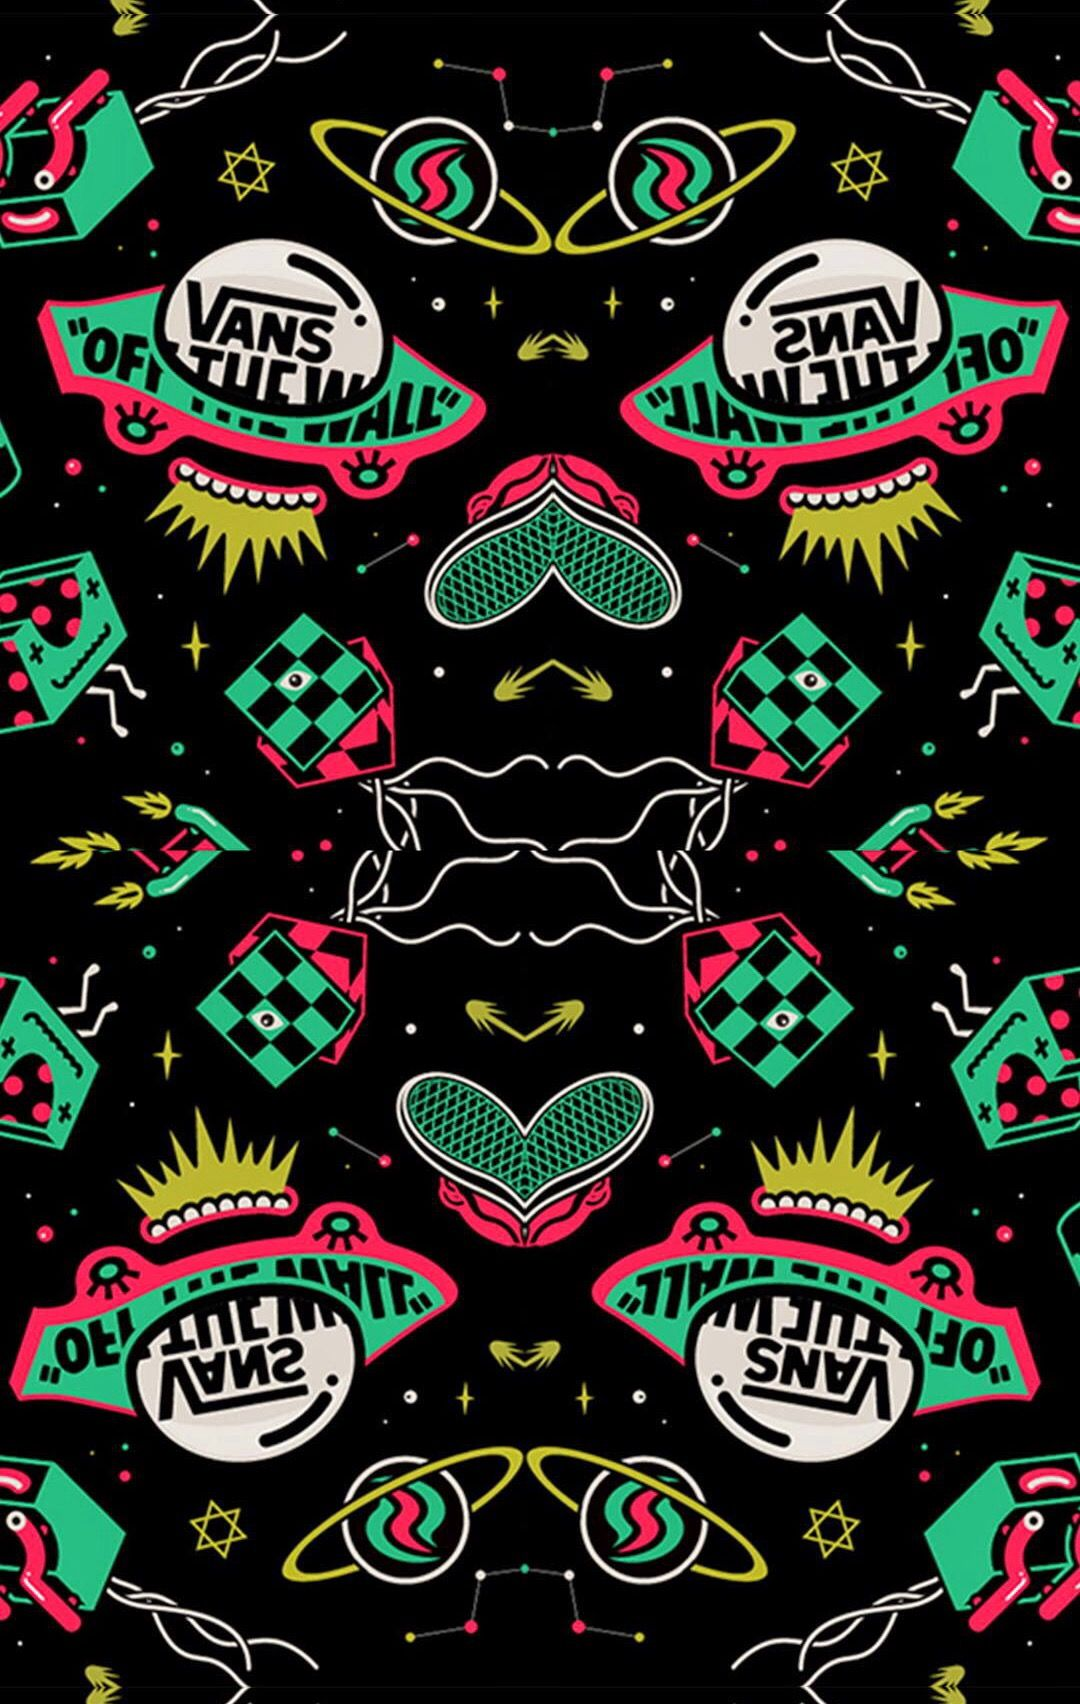 Pin by OP Sufreme on ok Hipster wallpaper, Hypebeast